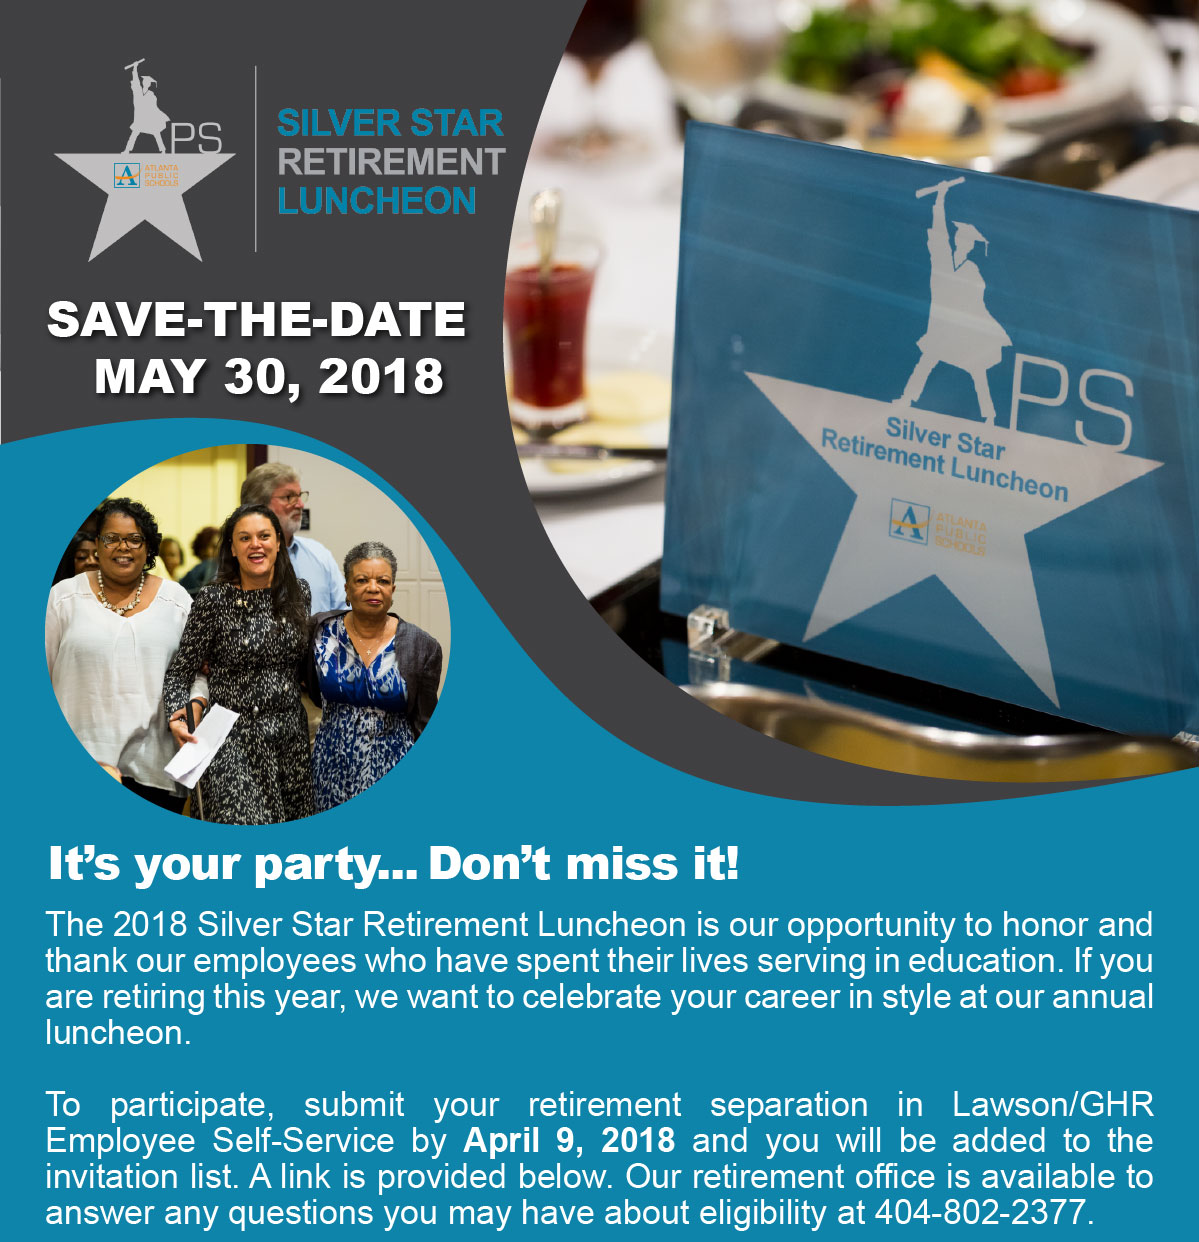 The 2018 Silver Star Retirement Luncheon is our opportunity to honor and thank our employees who have spent their lives serving in education. If you are retiring this year, we want to celebrate your career in style at our annual luncheon. 